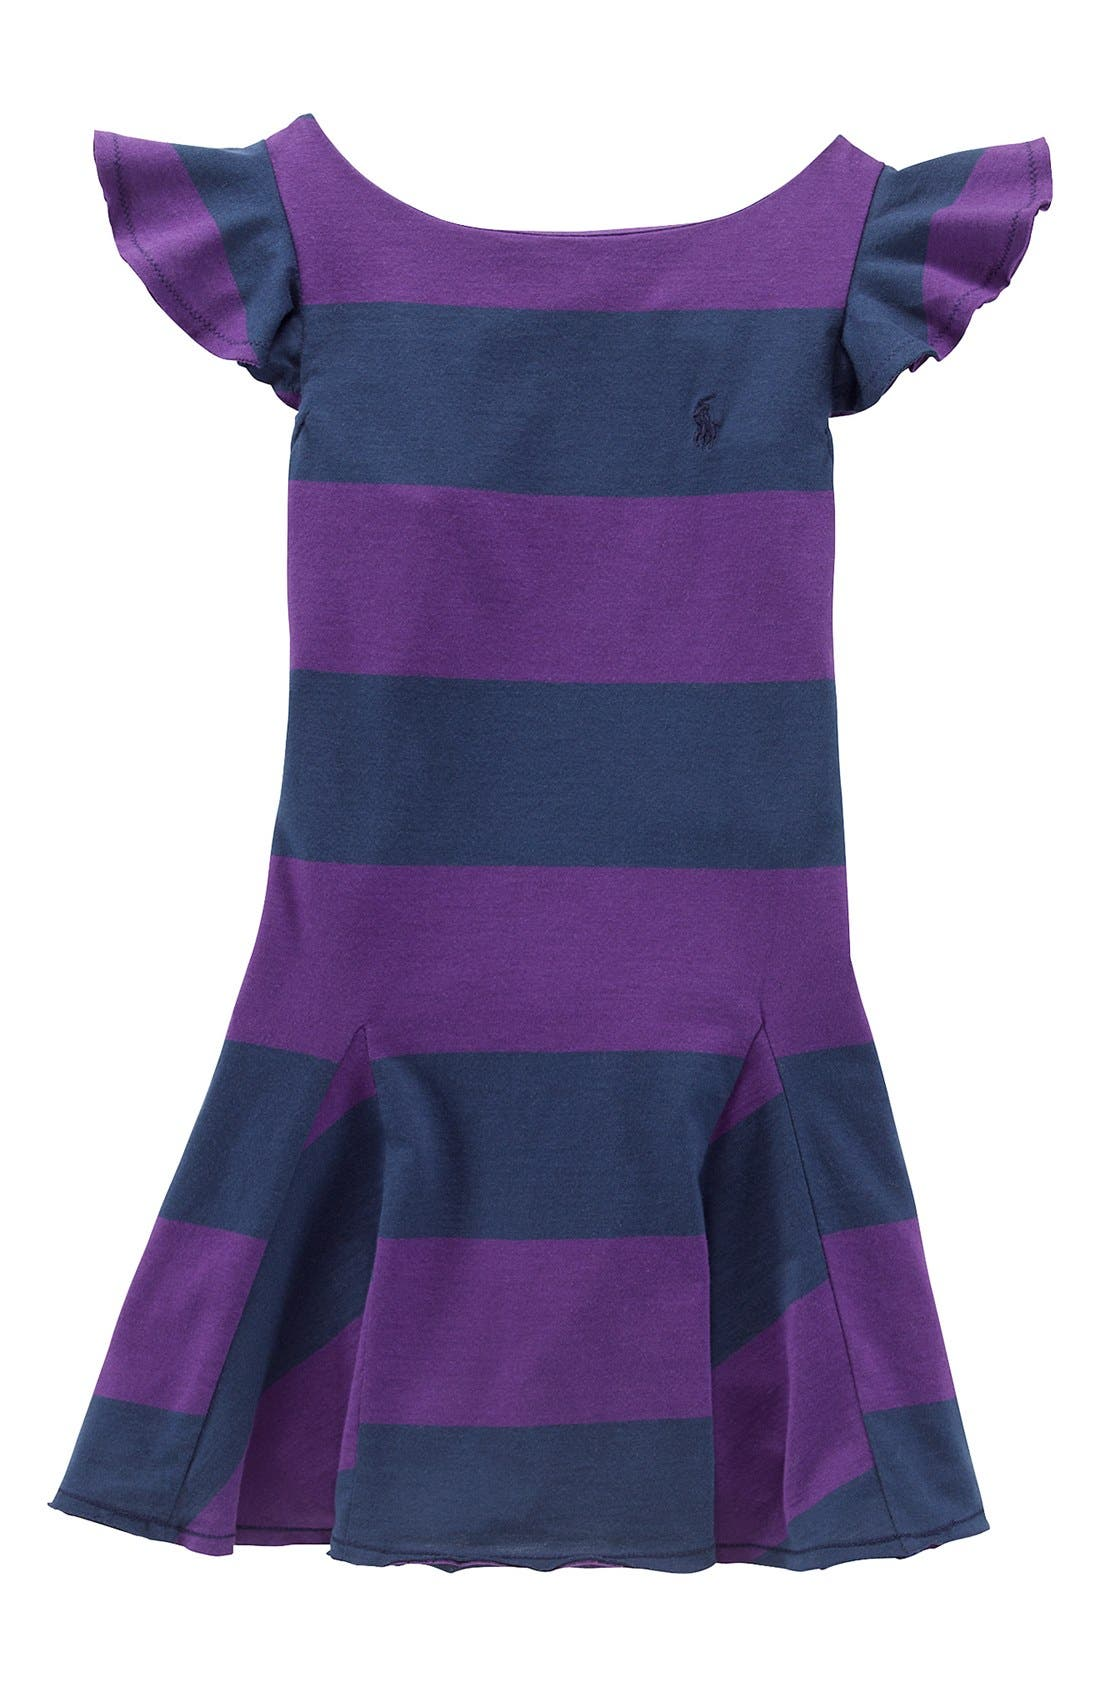 Alternate Image 1 Selected - Ralph Lauren Flutter Sleeve Dress (Toddler Girls)